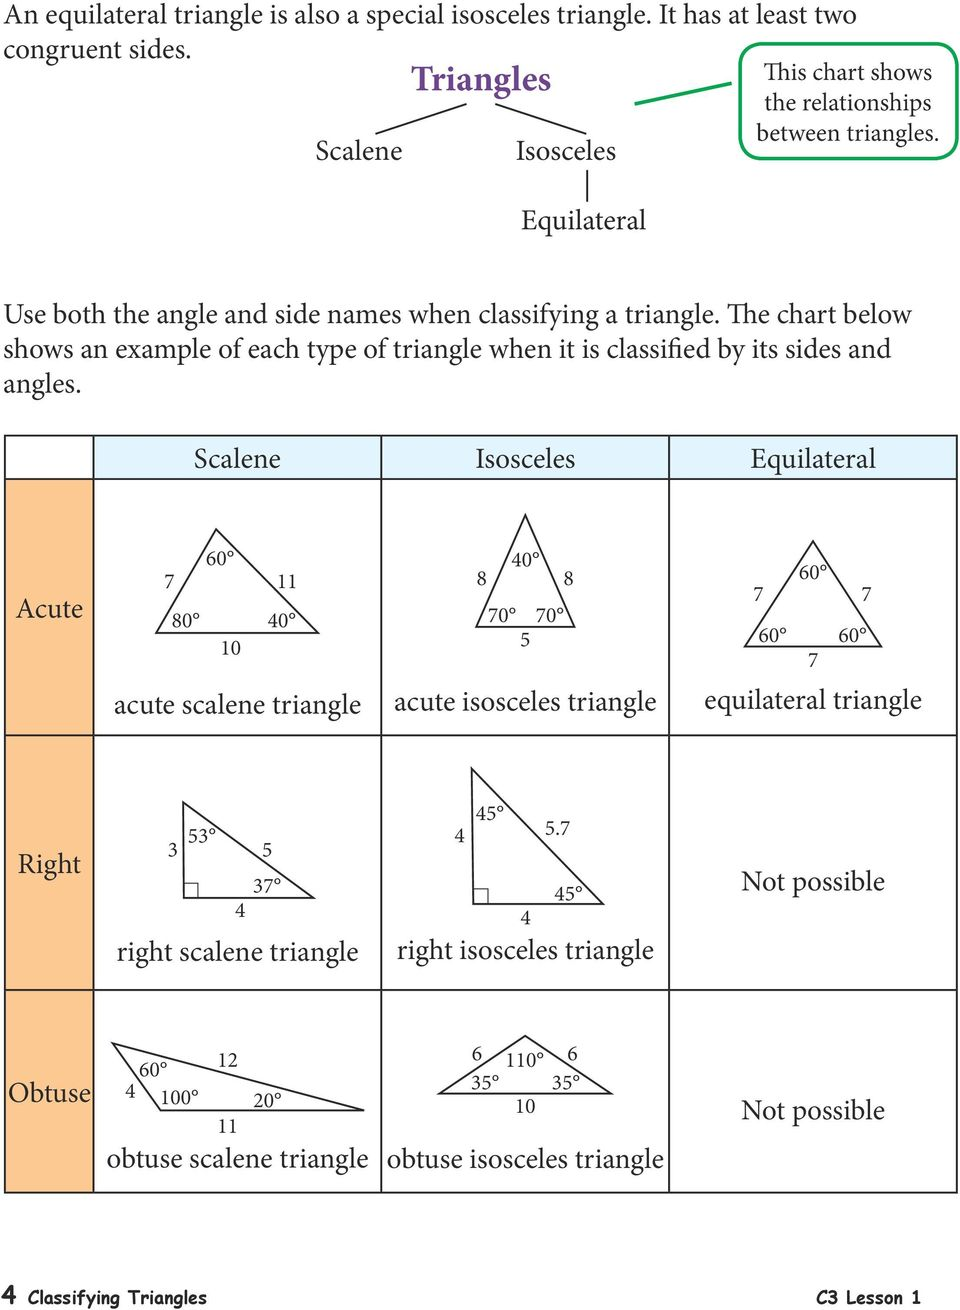 The chart below shows an example of each type of triangle when it is classified by its sides and angles.